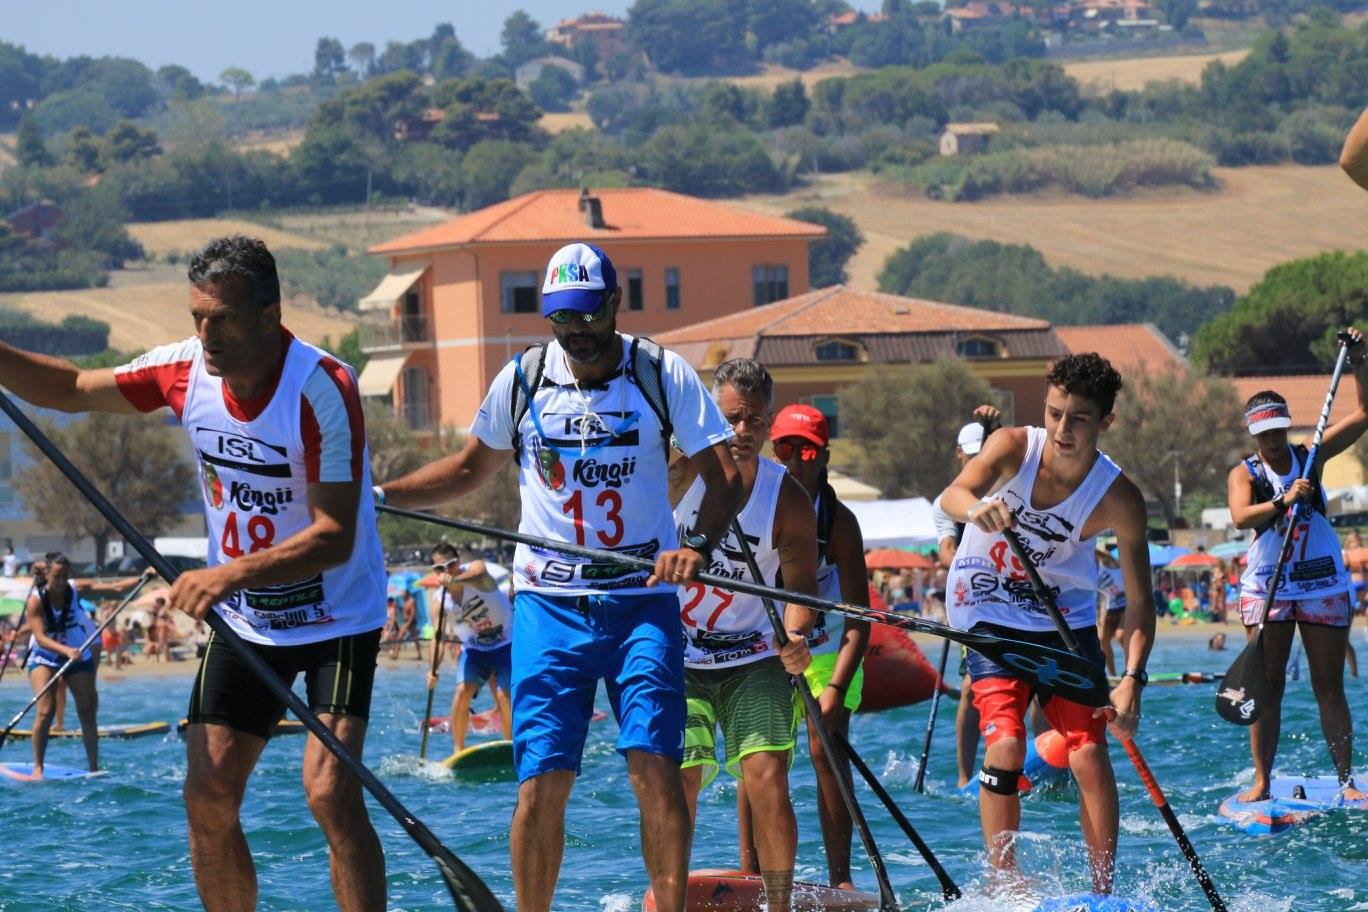 Sup-news-DEEJAY-Xmasters-SUP-Race-01